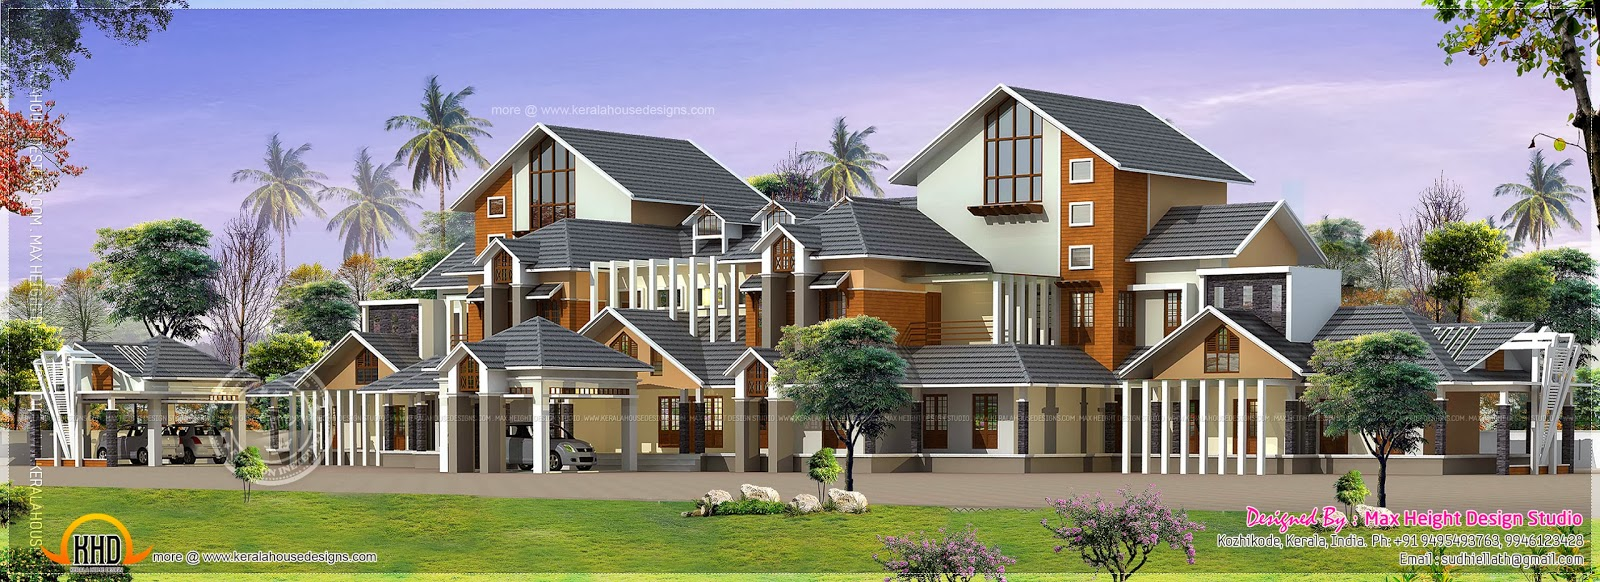 Gigantic super luxury floor plan home kerala plans - Luxery home plans gallery ...